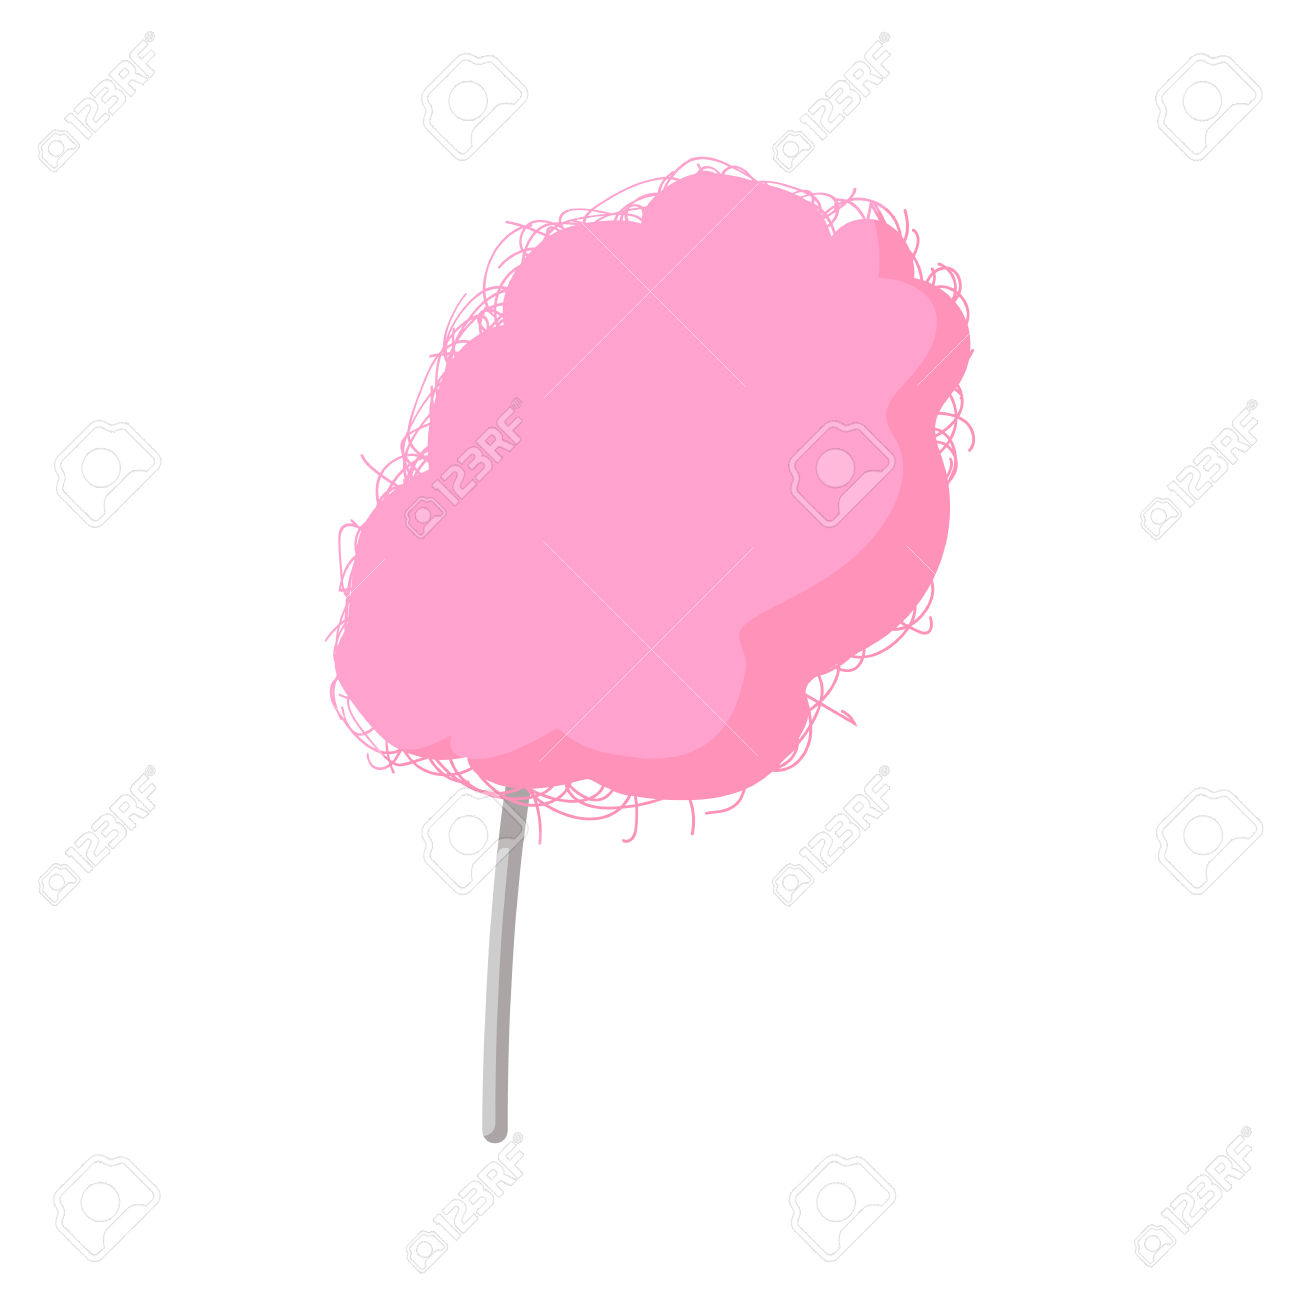 Pink Candy Floss Cartoon Icon On A White Background Royalty Free.